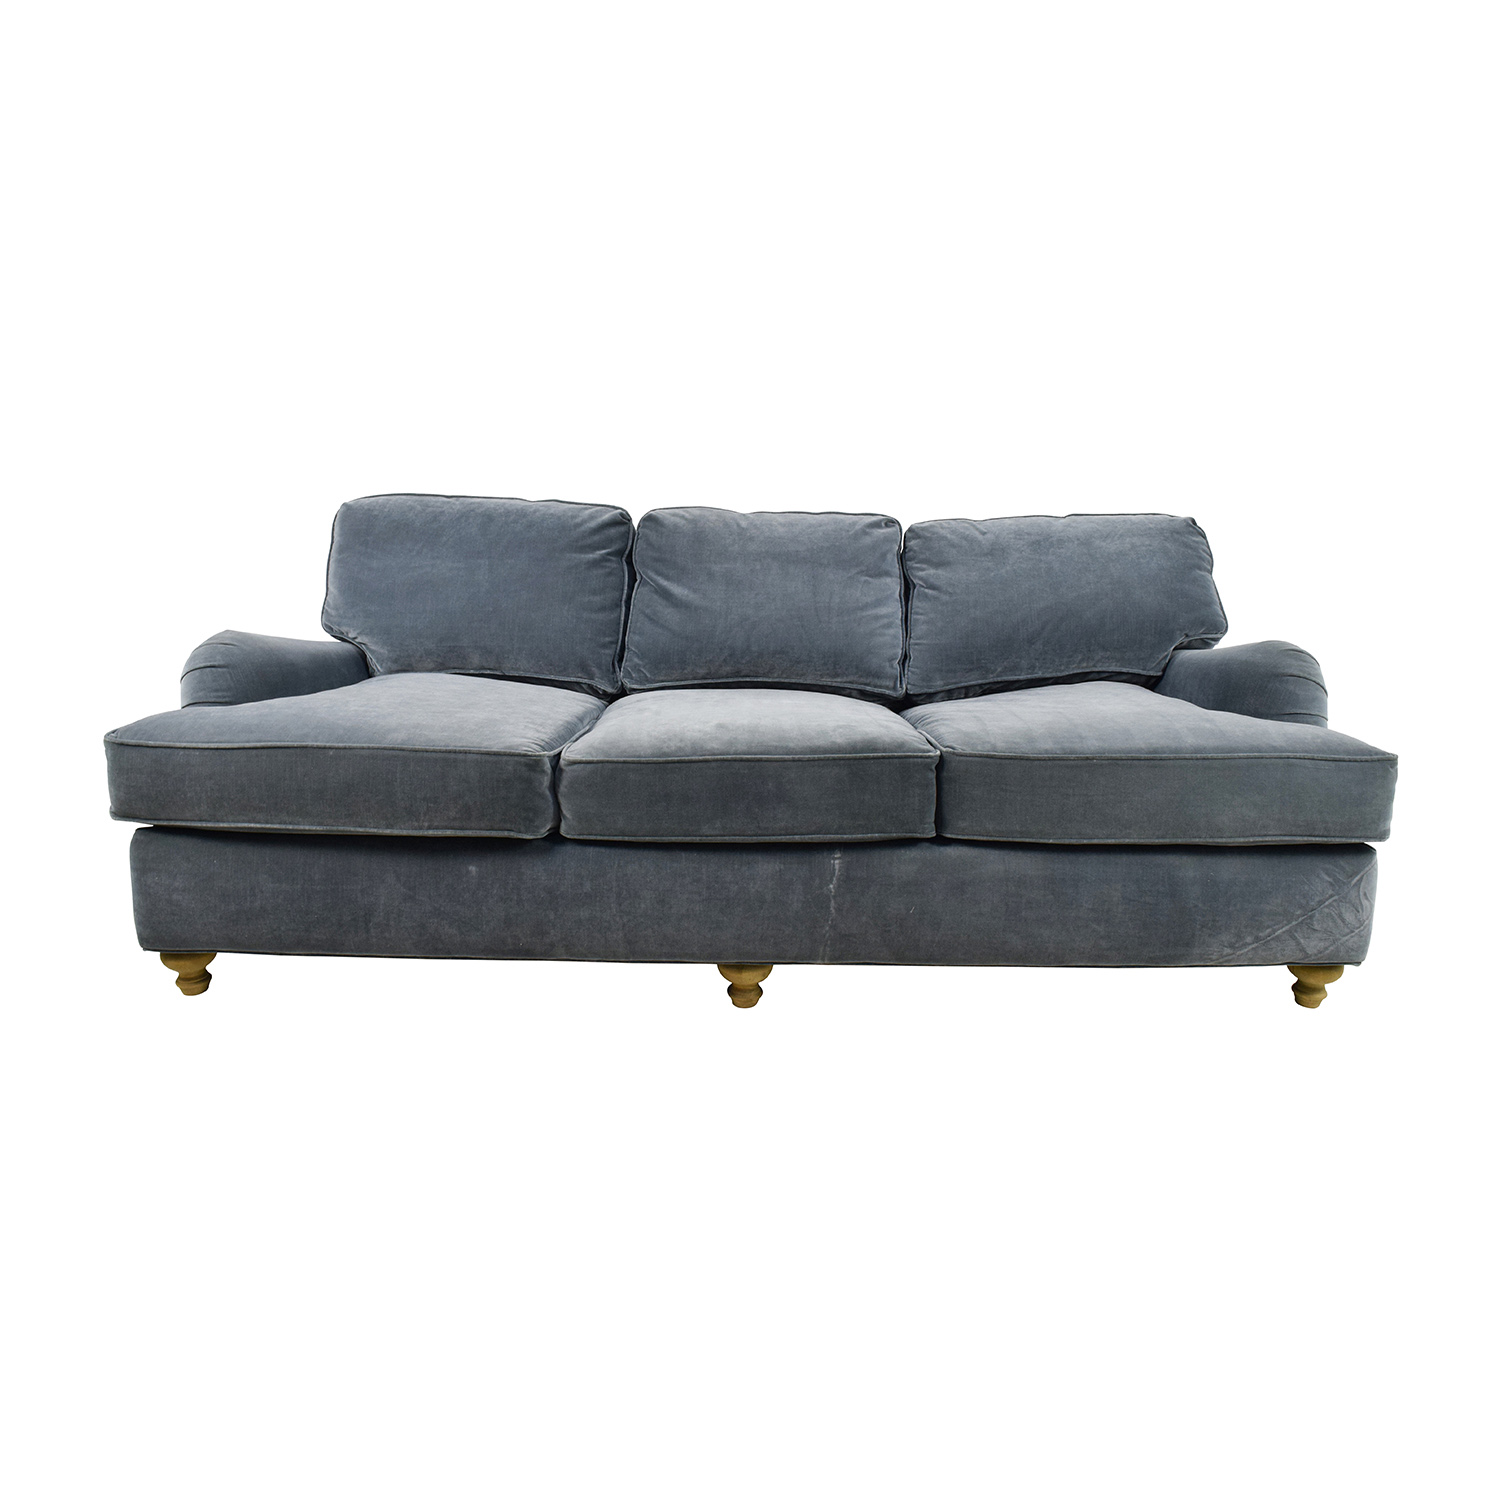 sleeper sofa restoration hardware year of clean water rh yearofcleanwater org